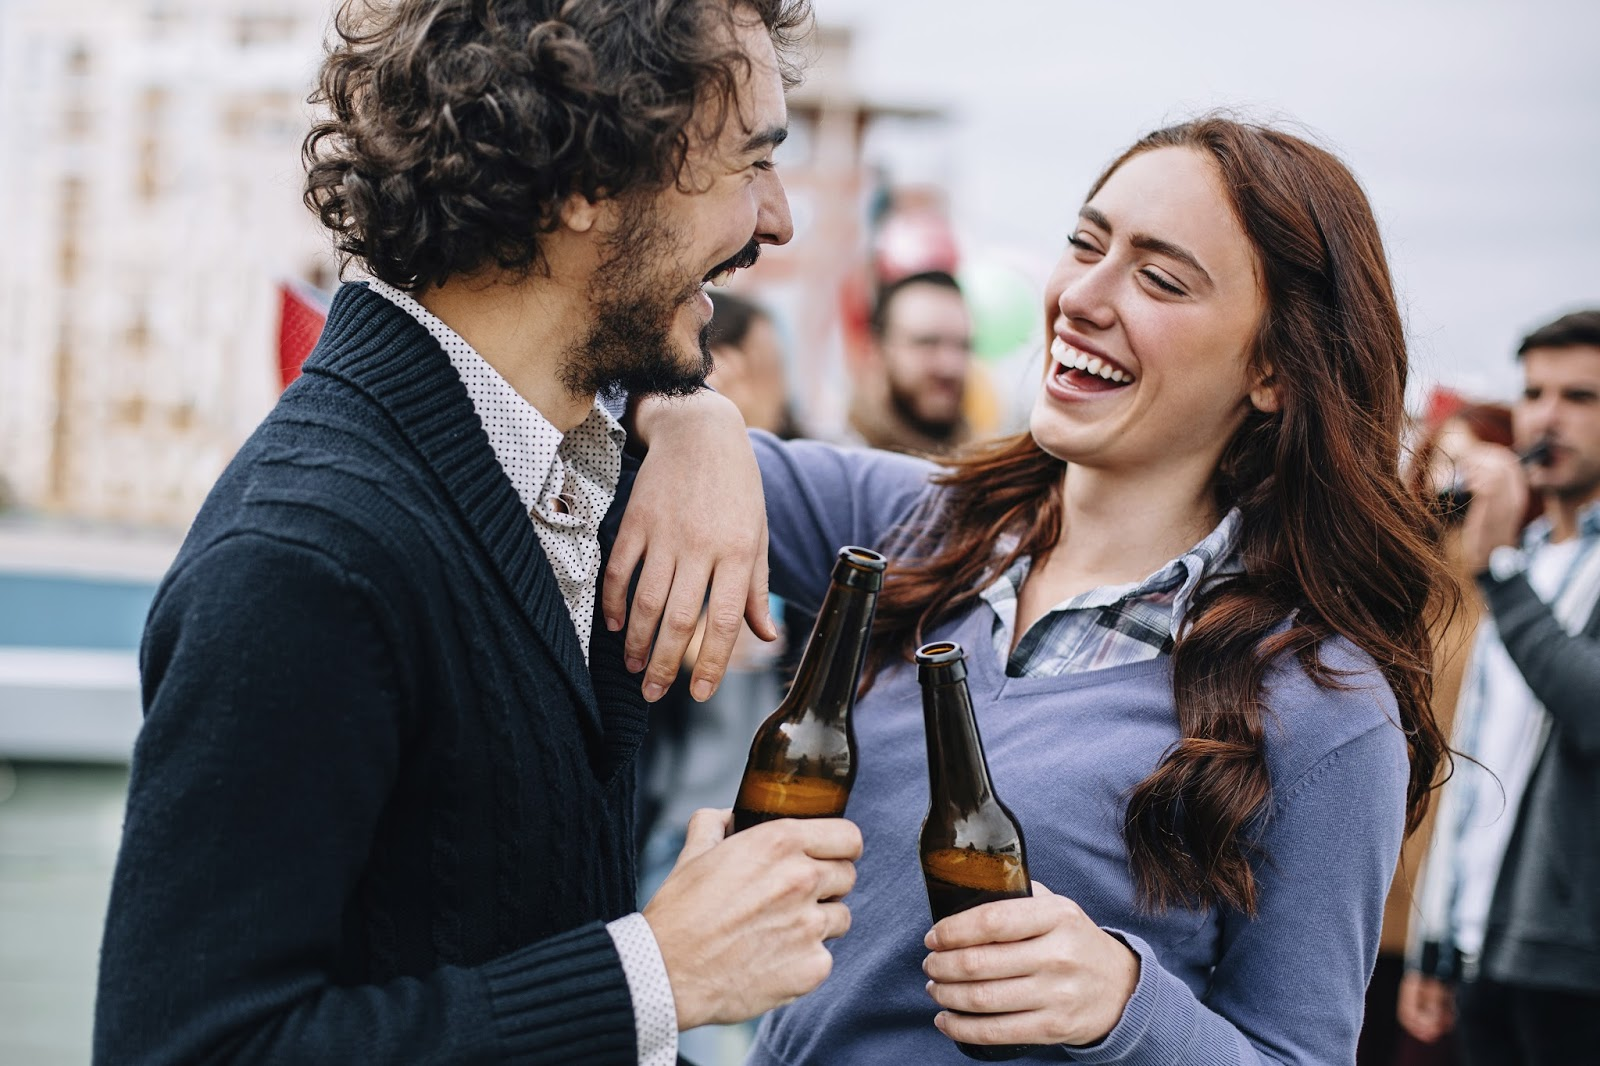 flirting tips for women Learn about flirting tips that can attract women and men improve your social interactions and create suggestive conversation with the opposite sex.